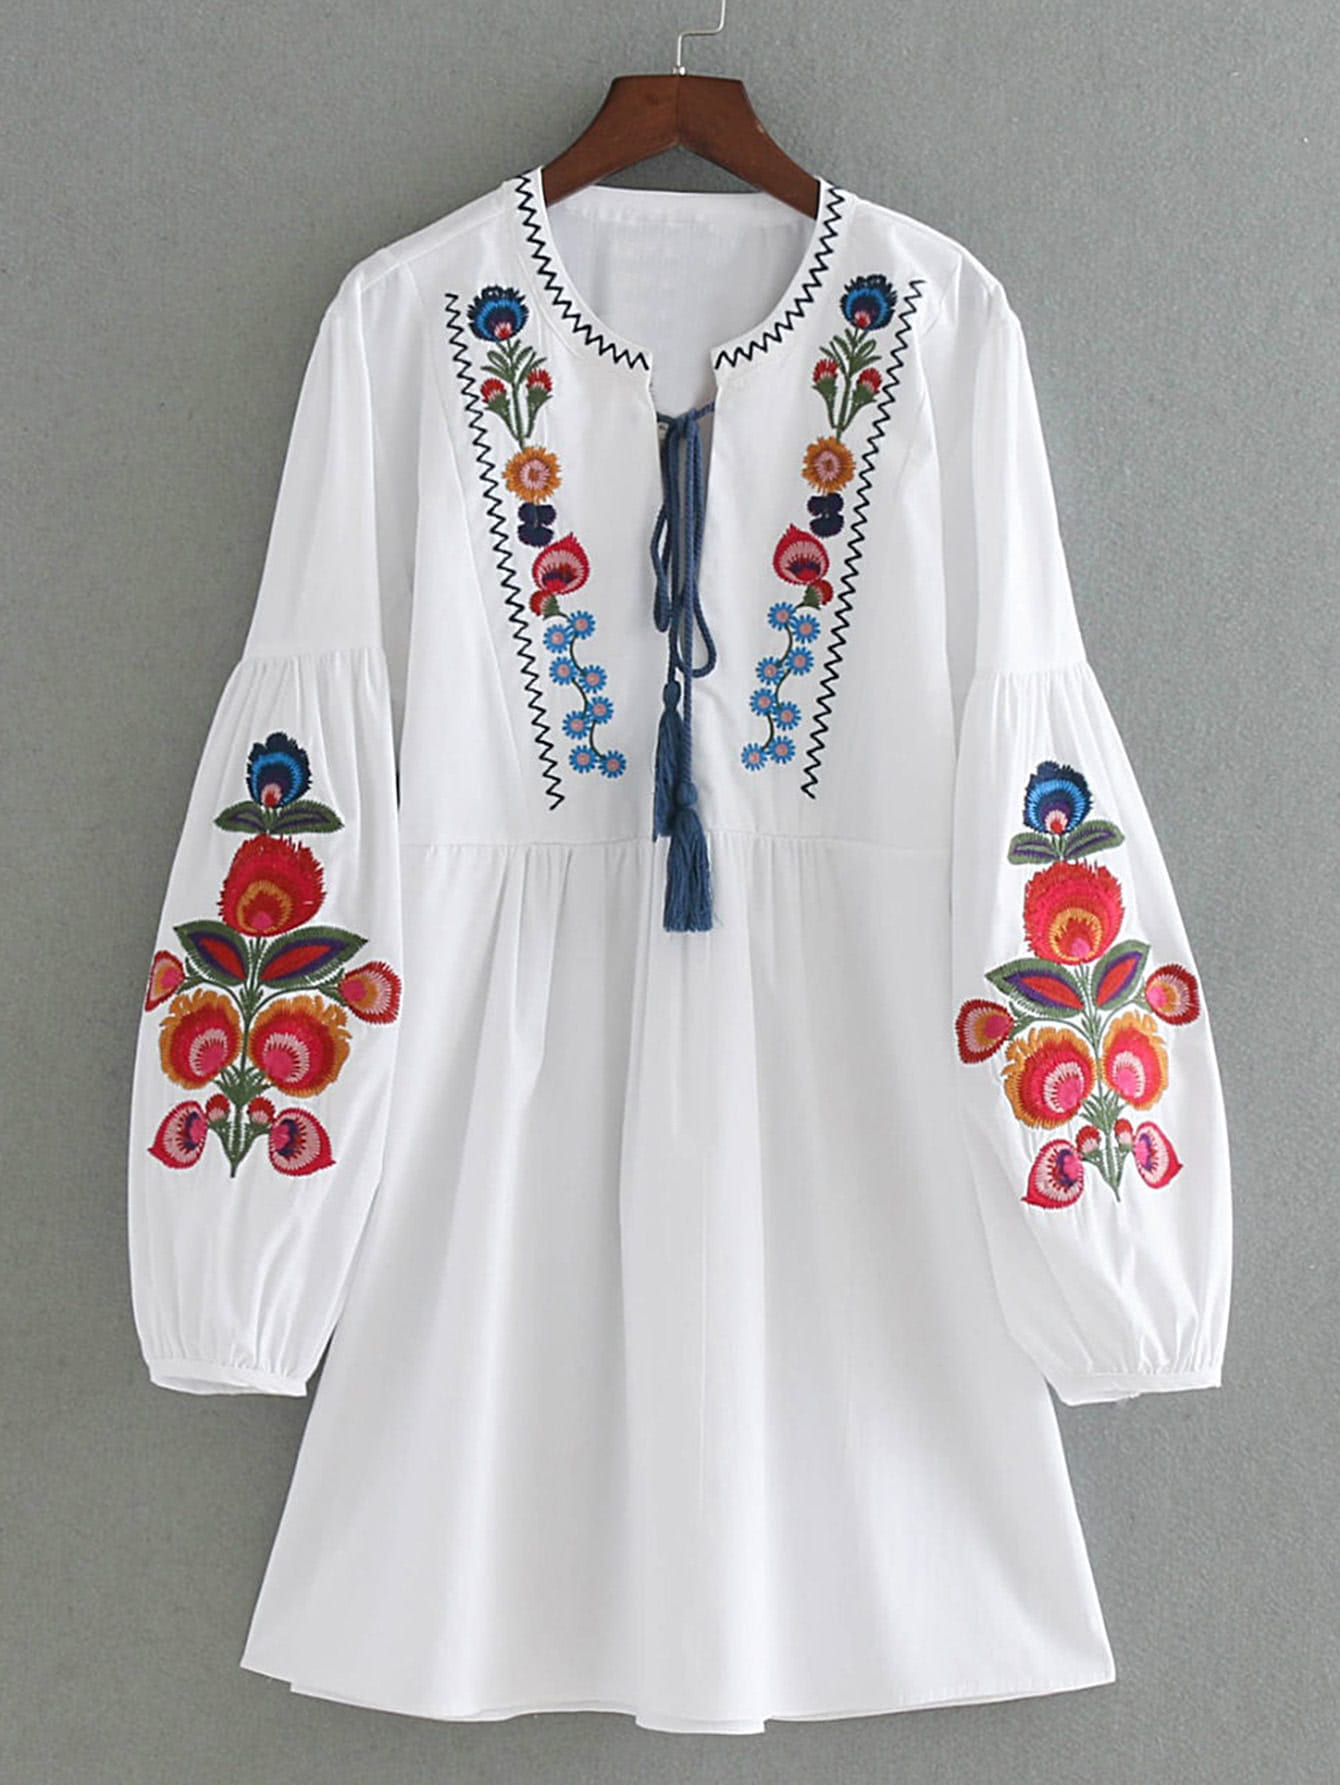 Drop Shoulder Flower Embroidery Tassel Tie Dress long drop shoulder sweatshirt dress with tassel